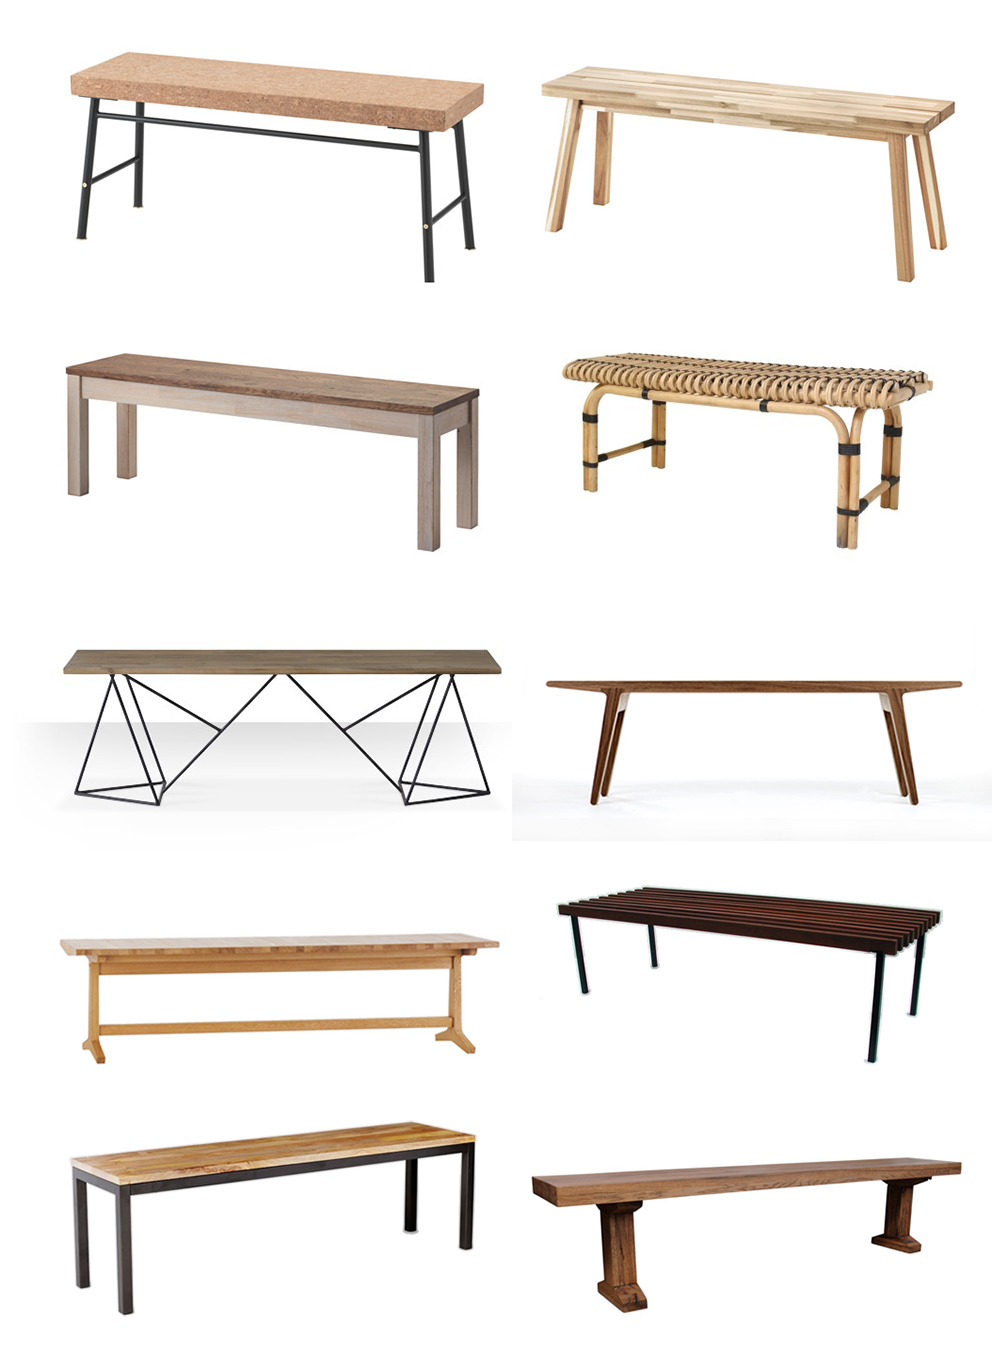 Bench Seats - French For Pineapple Blog